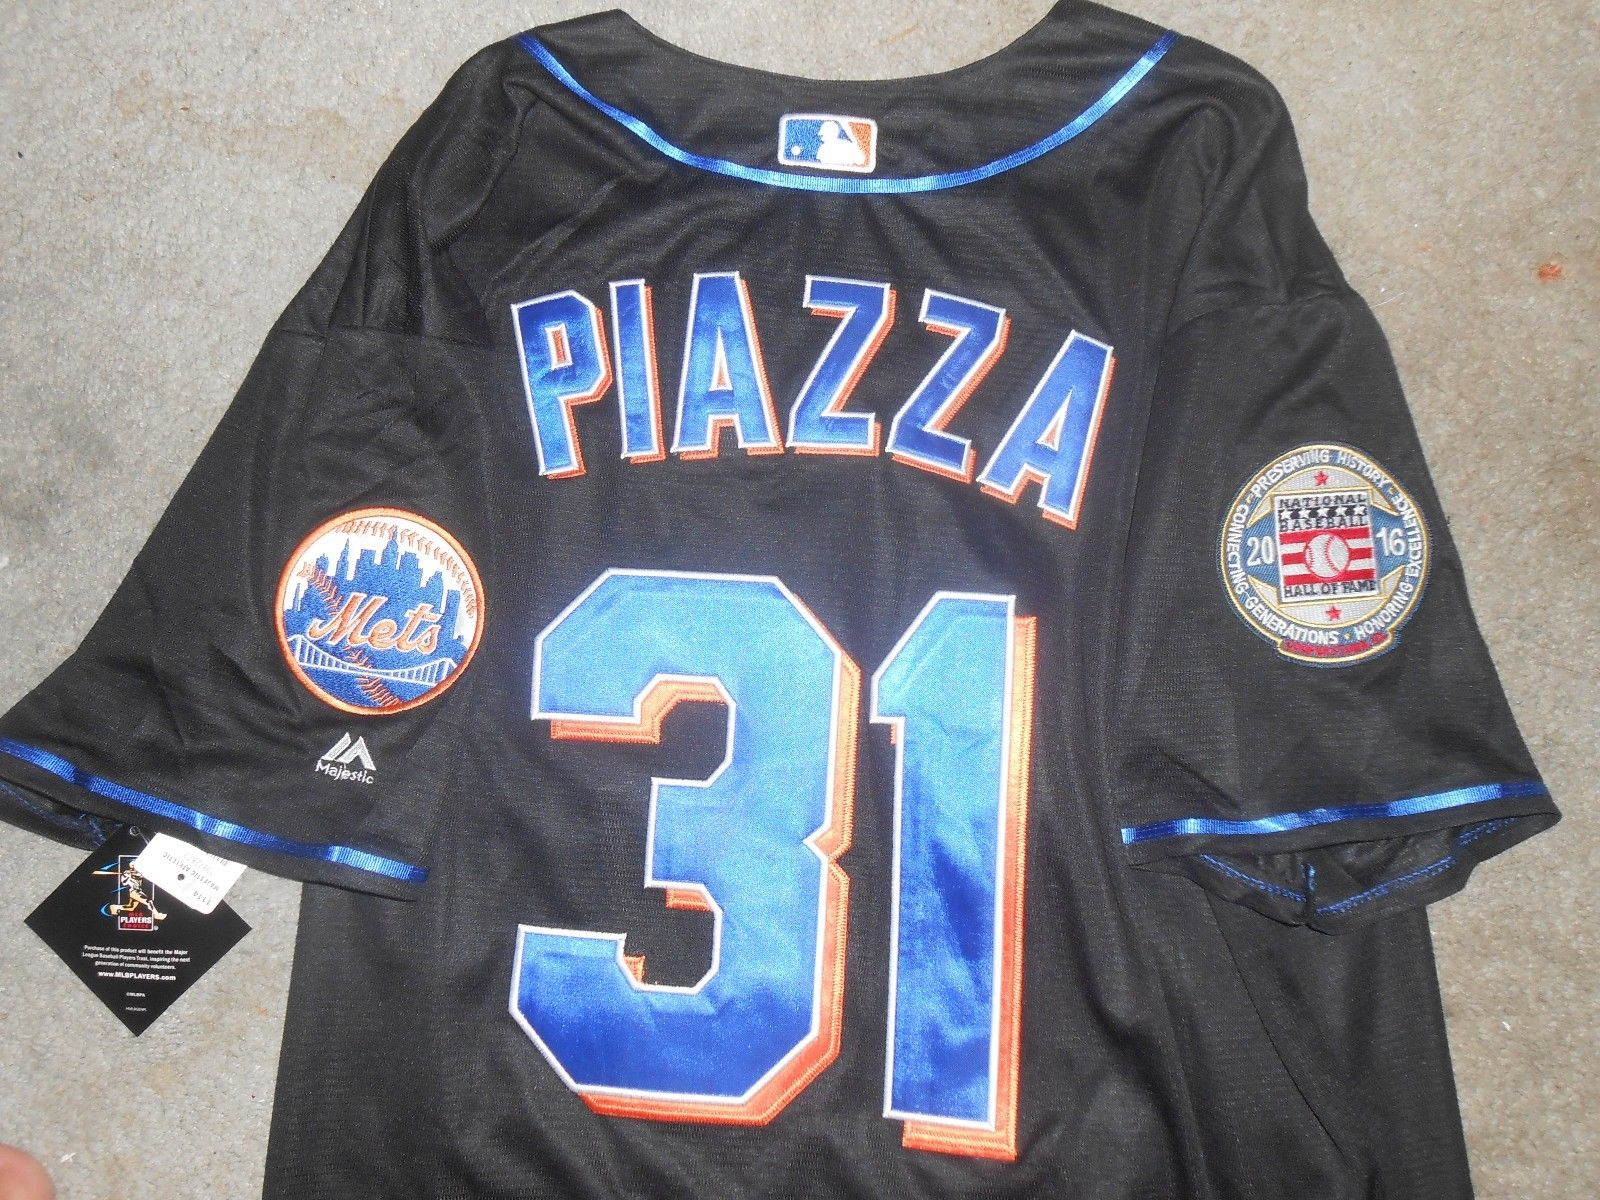 differently e5e2d 70f3b TheMediagoon.com: Knockoff Piazza Jersey